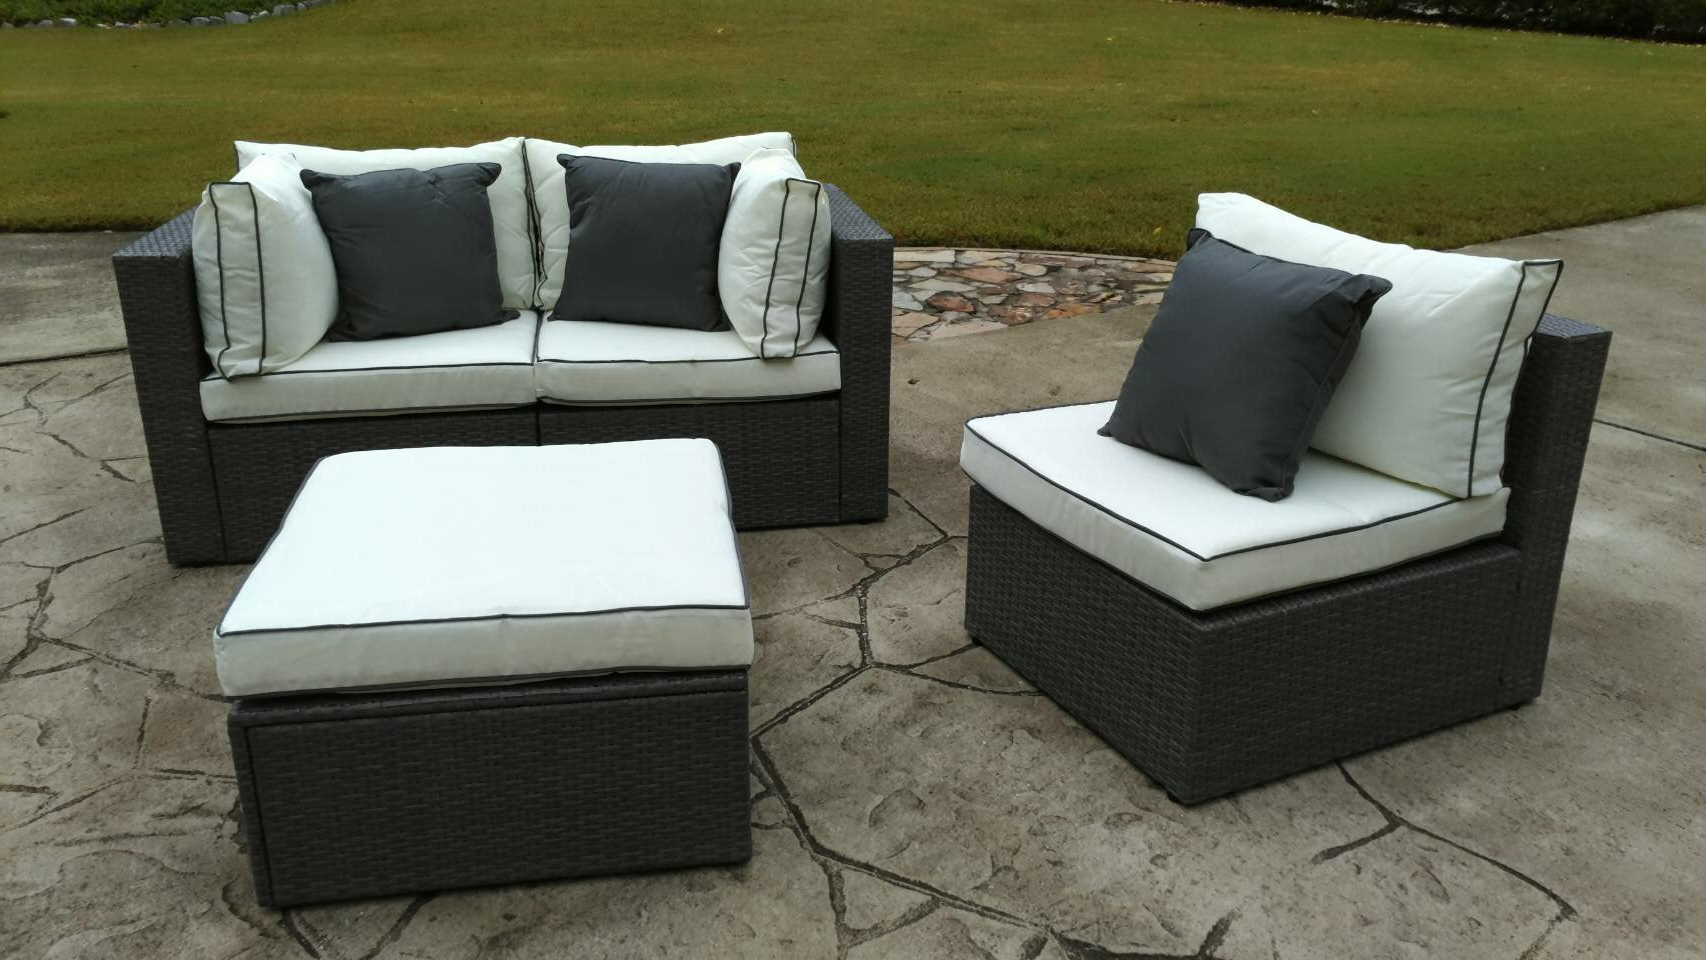 Popular Burruss Patio Sectionals With Cushions Throughout Three Posts Burruss 4 Piece Patio Sectional With Cushions (View 8 of 25)